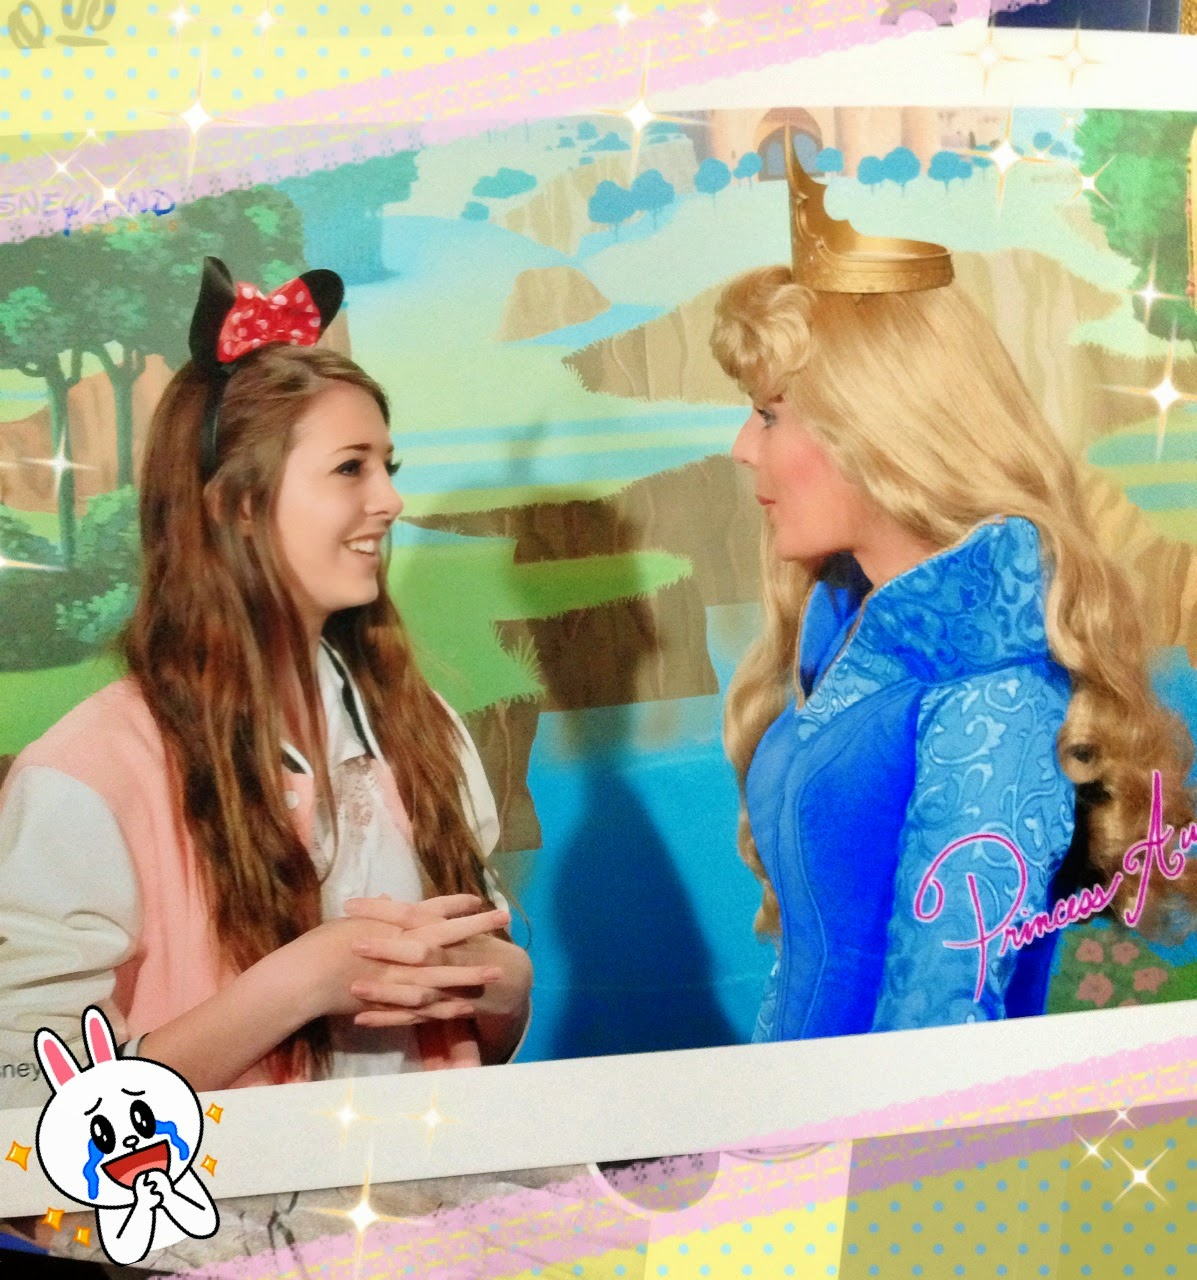 Princess life tips and tricks for visiting disneyland paris princess life tips and tricks for visiting disneyland paris how to meet princesses m4hsunfo